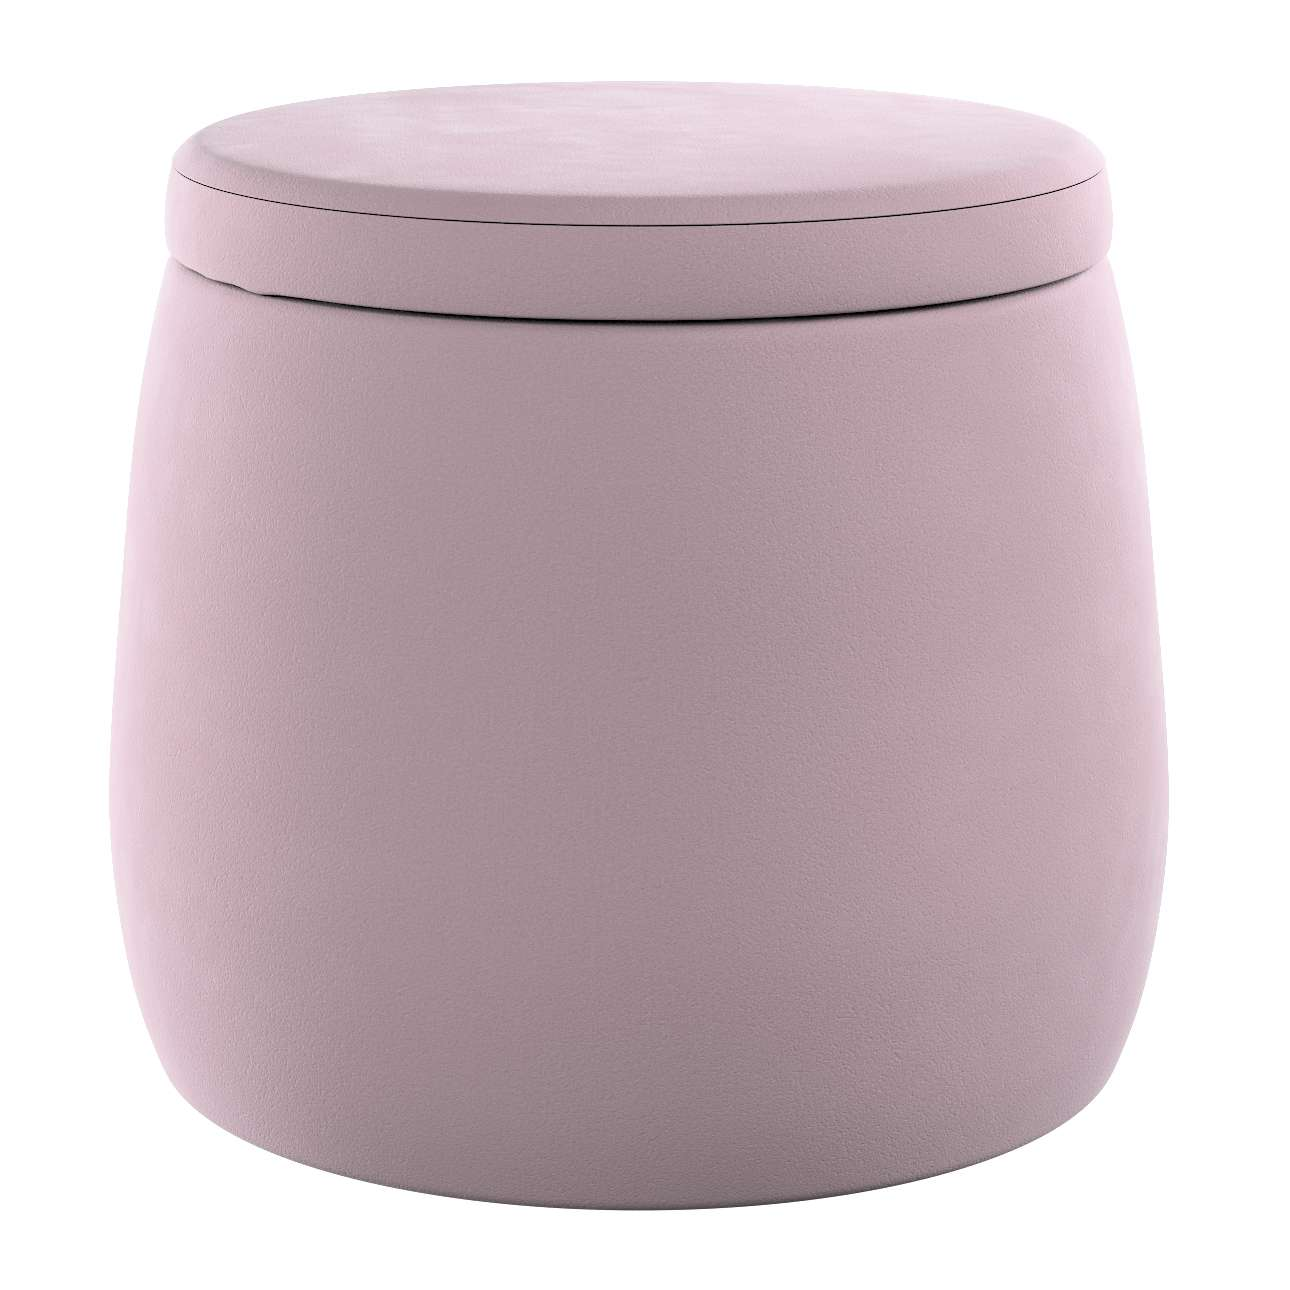 Candy Jar pouf in collection Posh Velvet, fabric: 704-14